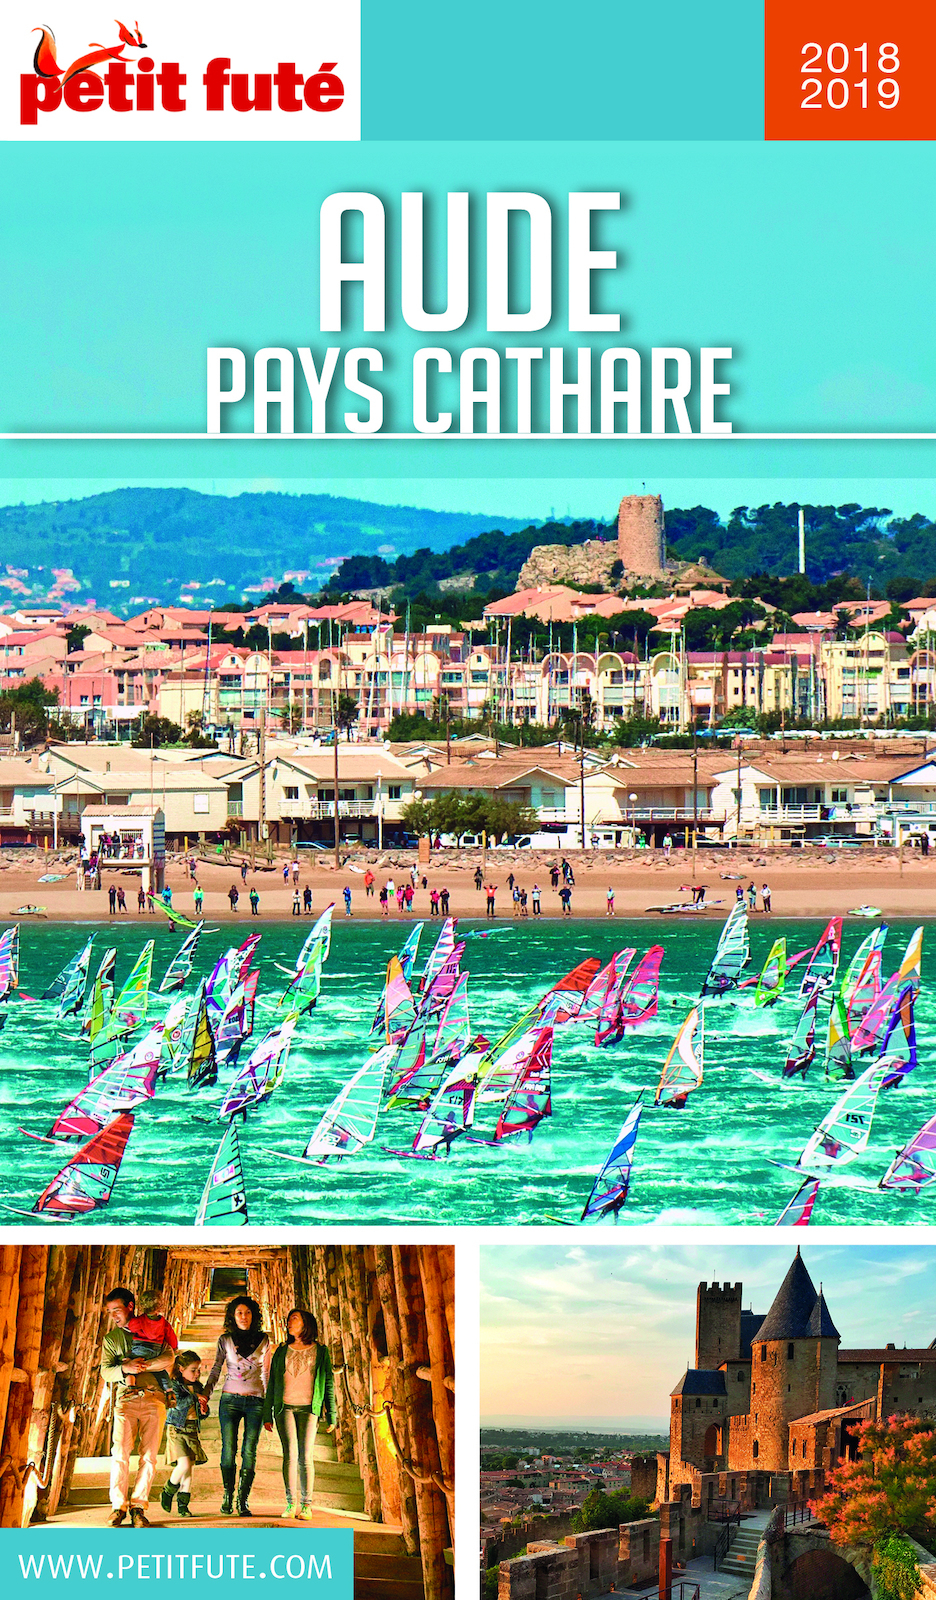 AUDE - PAYS CATHARE 2018/2019 Petit Fut?